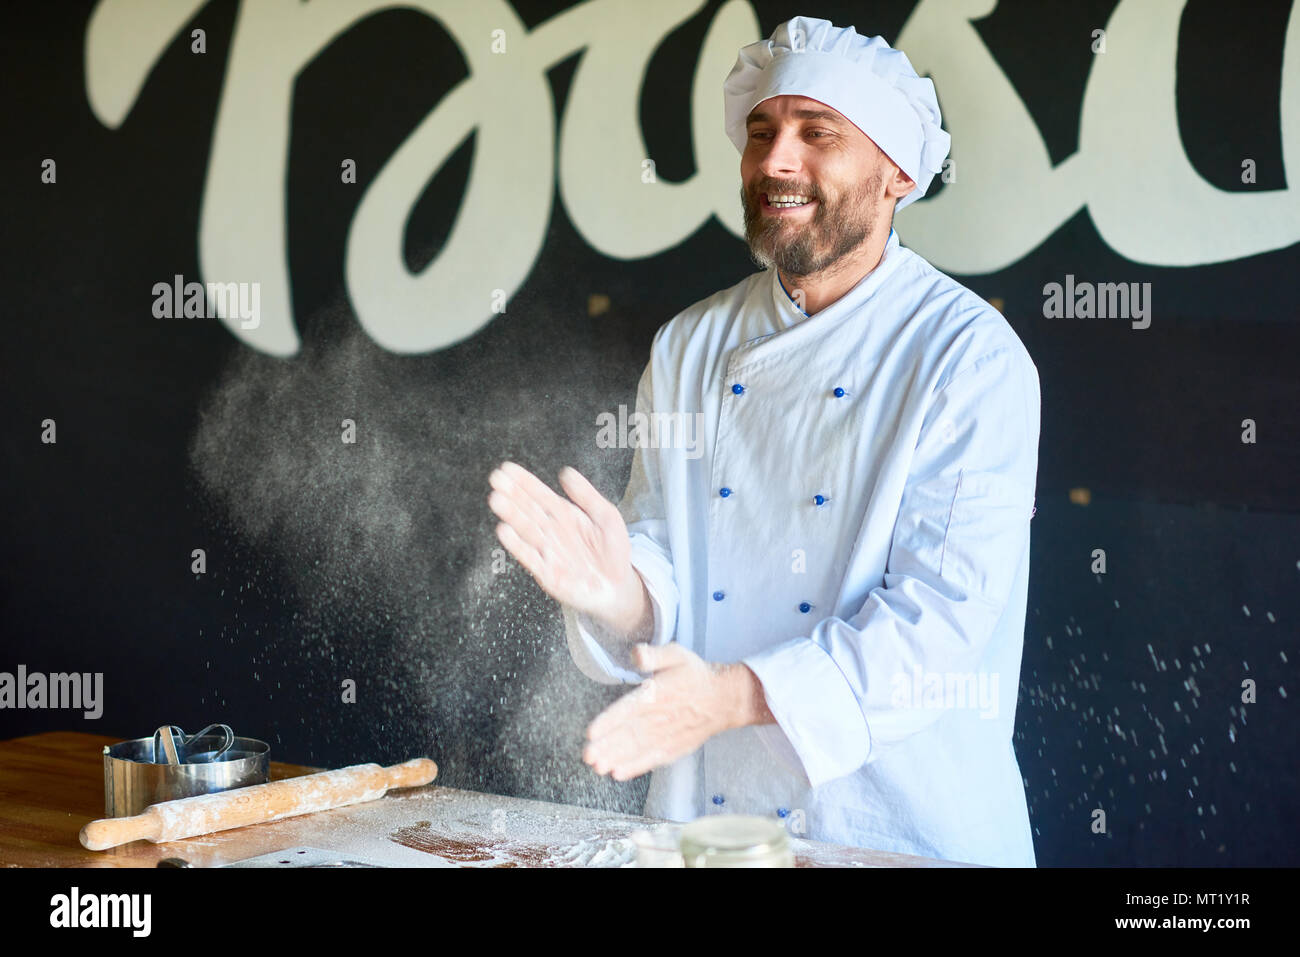 Baker in the kitchen - Stock Image